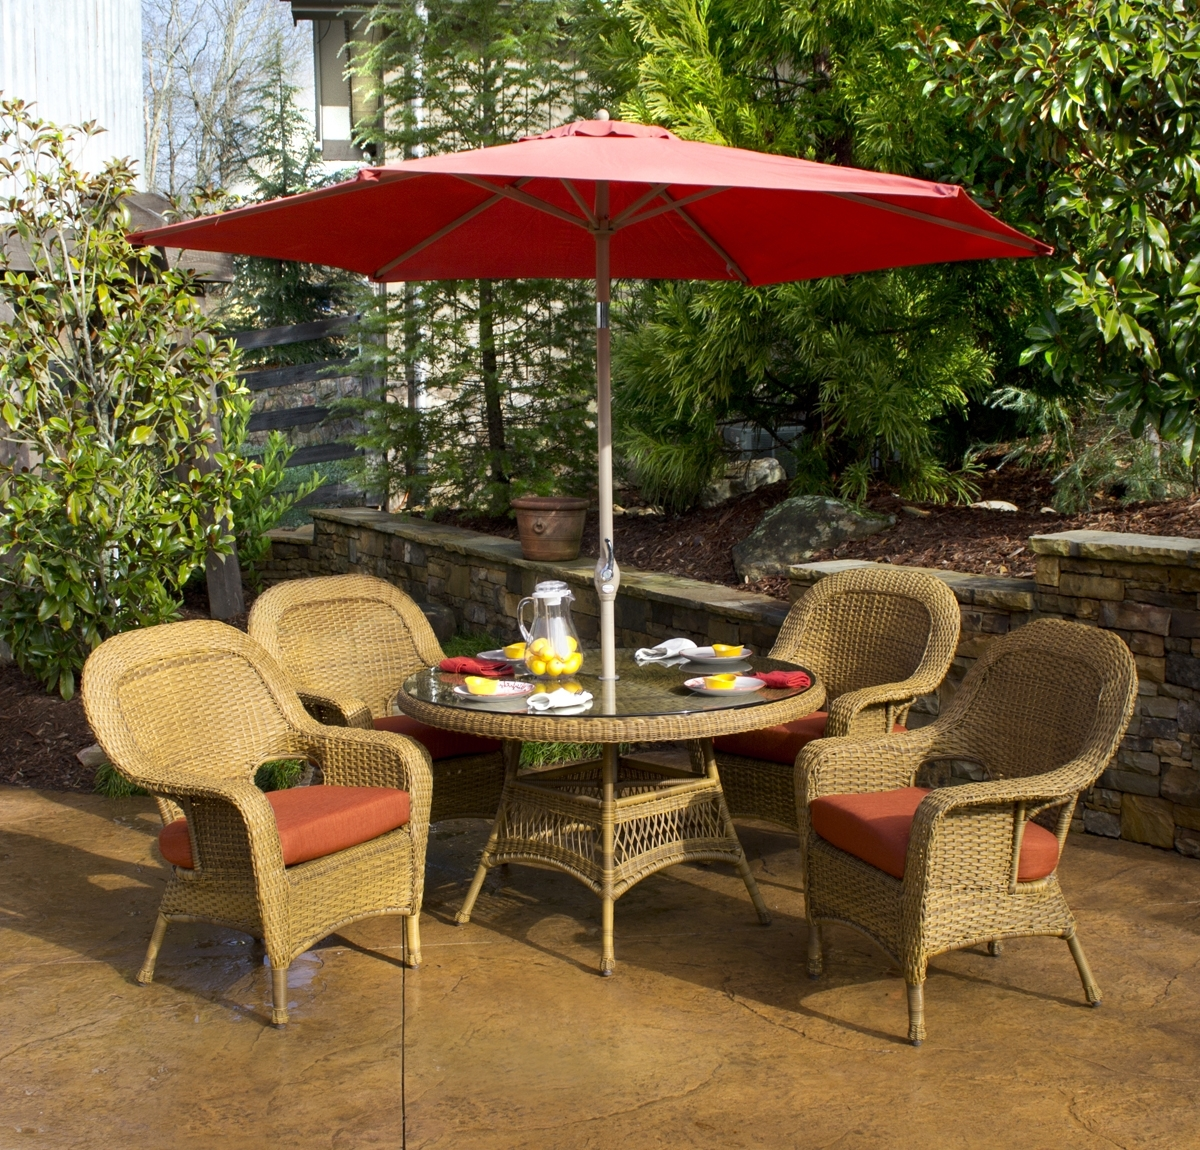 Small Patio Tables With Umbrellas Hole Pertaining To 2019 Patio: Amazing Small Patio Table With Umbrella Outdoor Furniture (View 18 of 20)